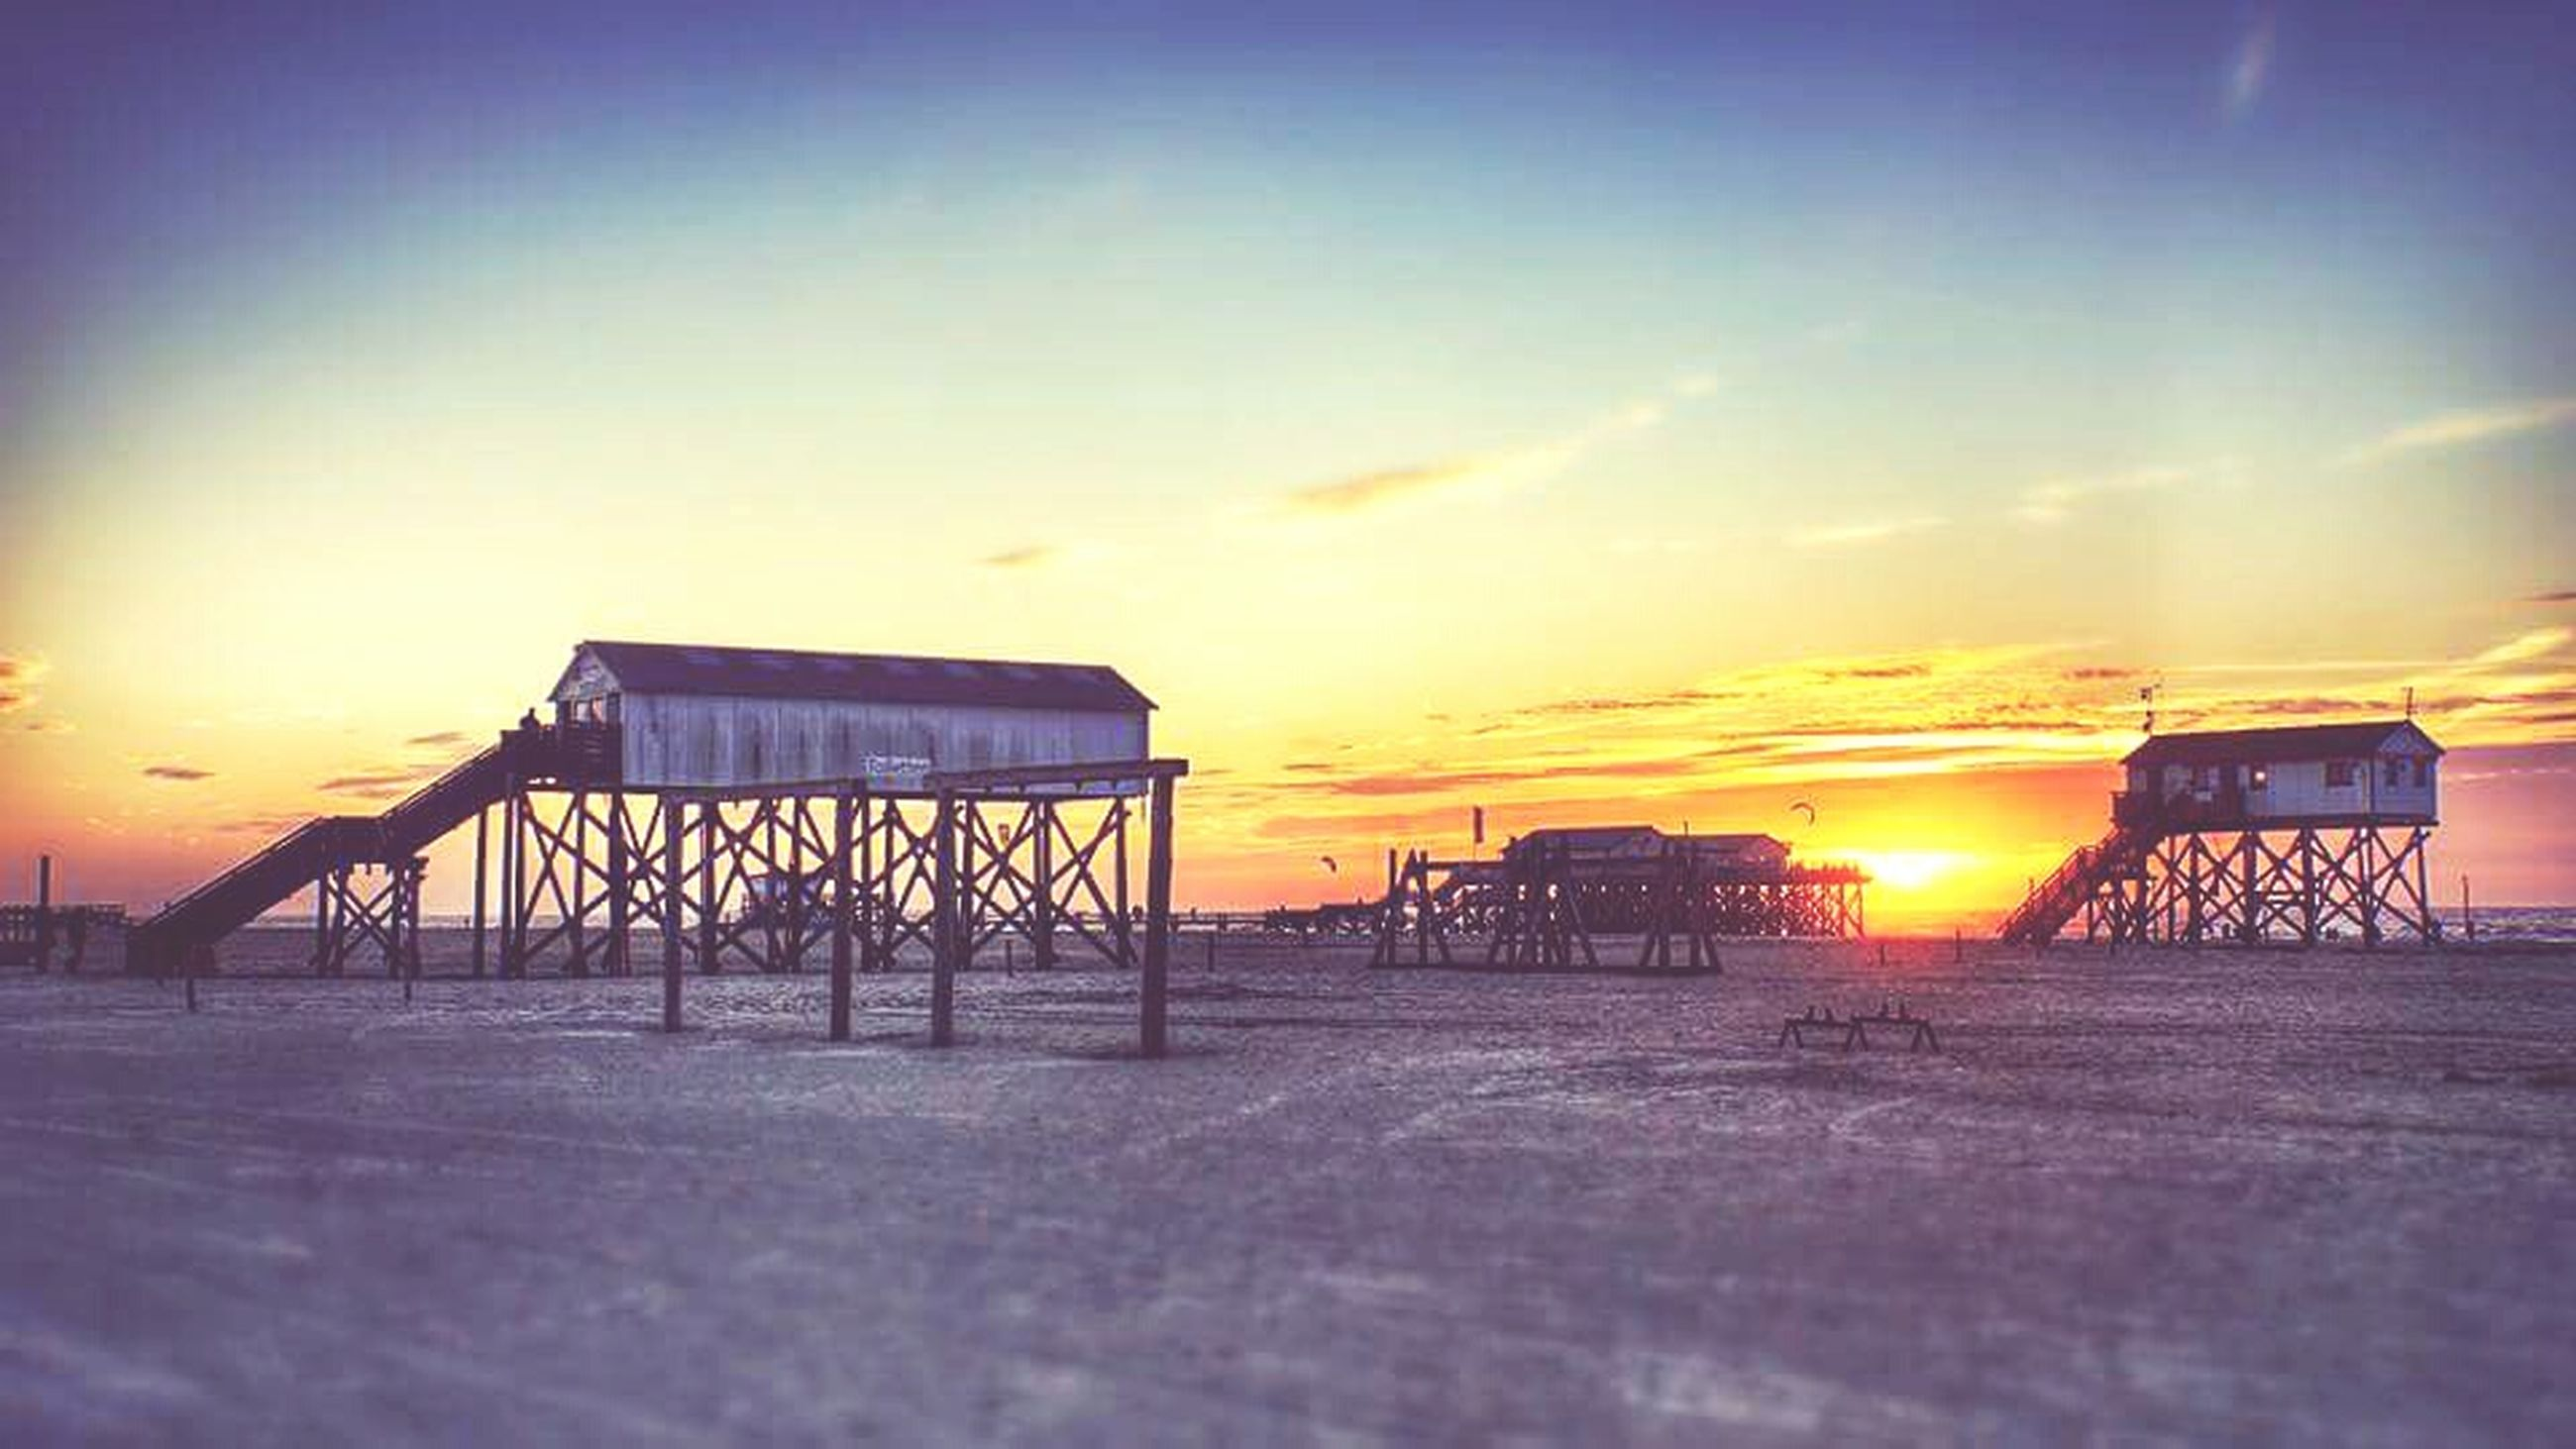 sunset, surface level, built structure, tranquil scene, architecture, tranquility, sky, outdoors, scenics, cloud, sun, agriculture, farm, beauty in nature, blue, nature, harvesting